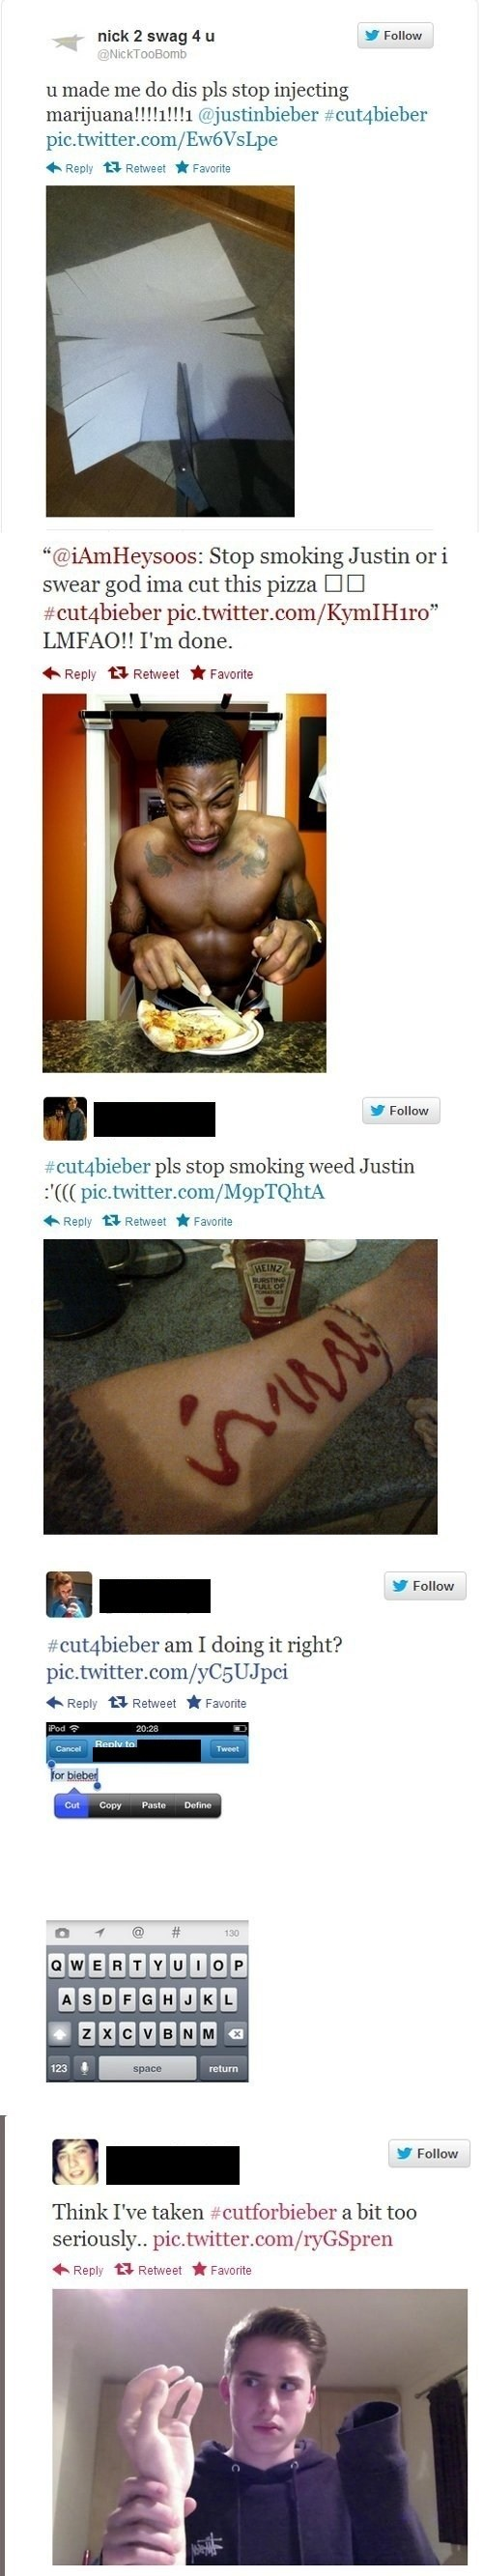 self harm twitter news cutting cutforbieber justin bieber Music FAILS